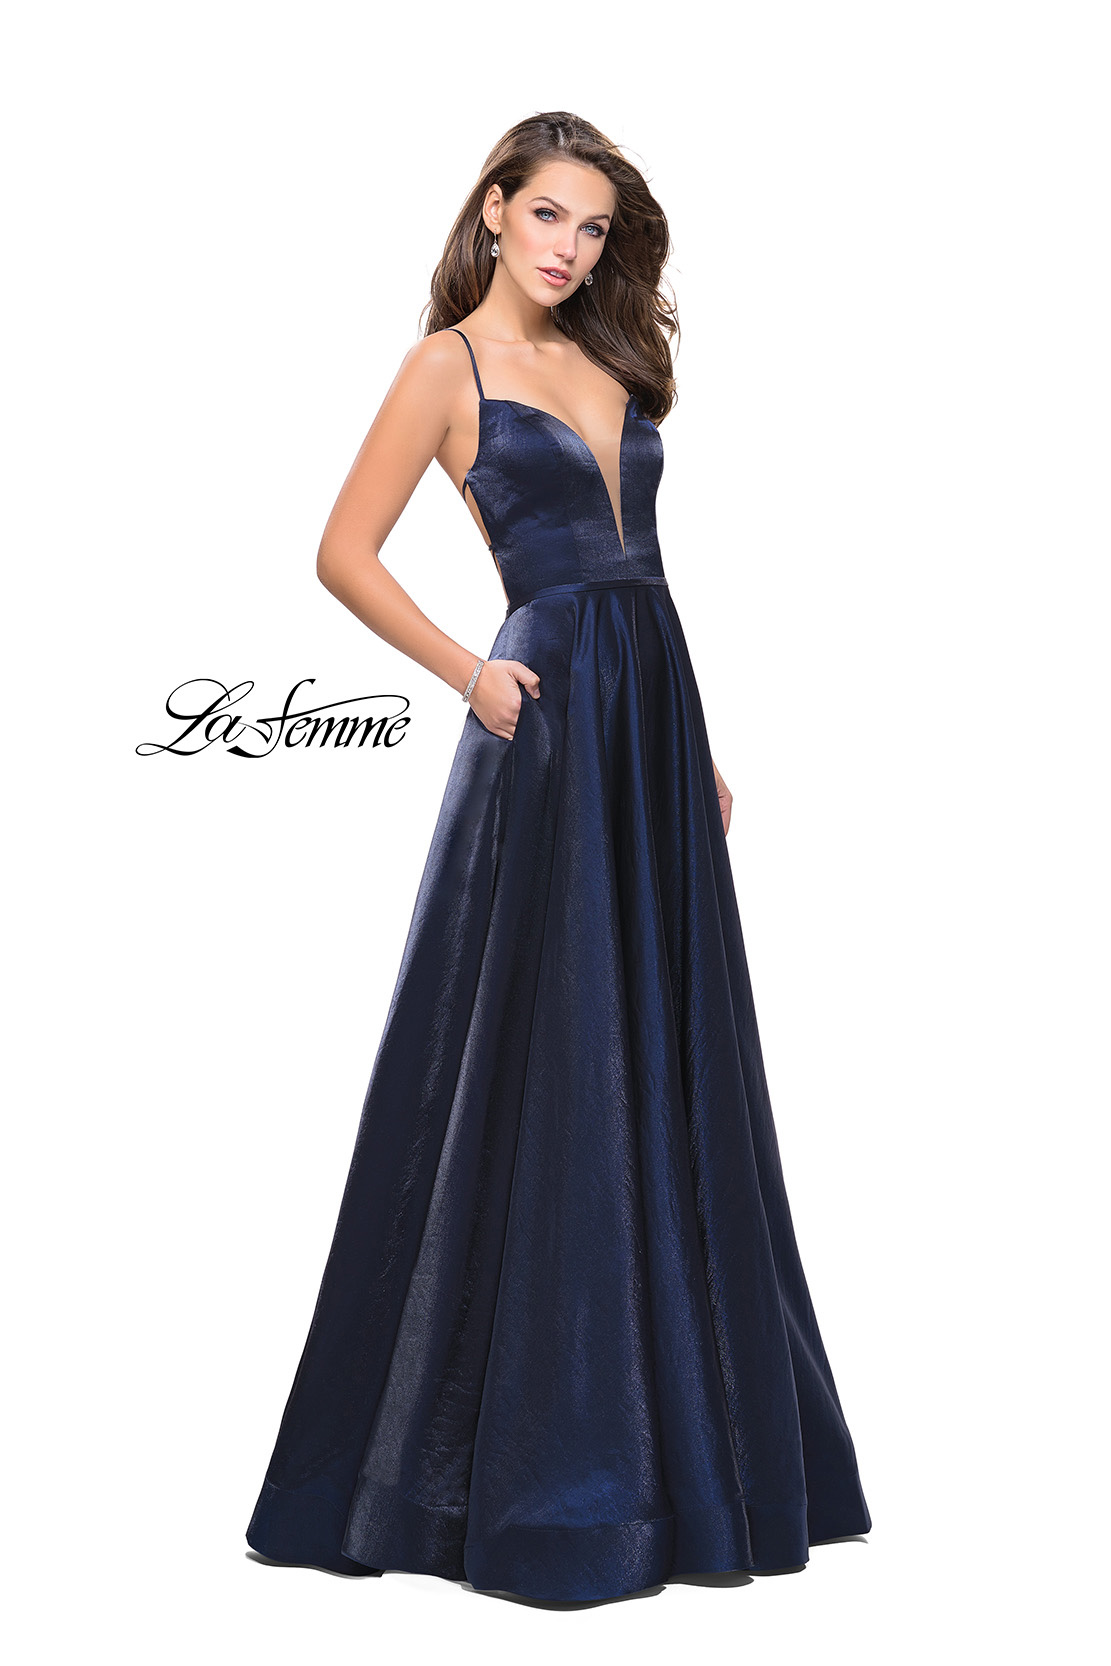 Navy Prom Dress with Shiny Satin Fabric and Deep V by La Femme